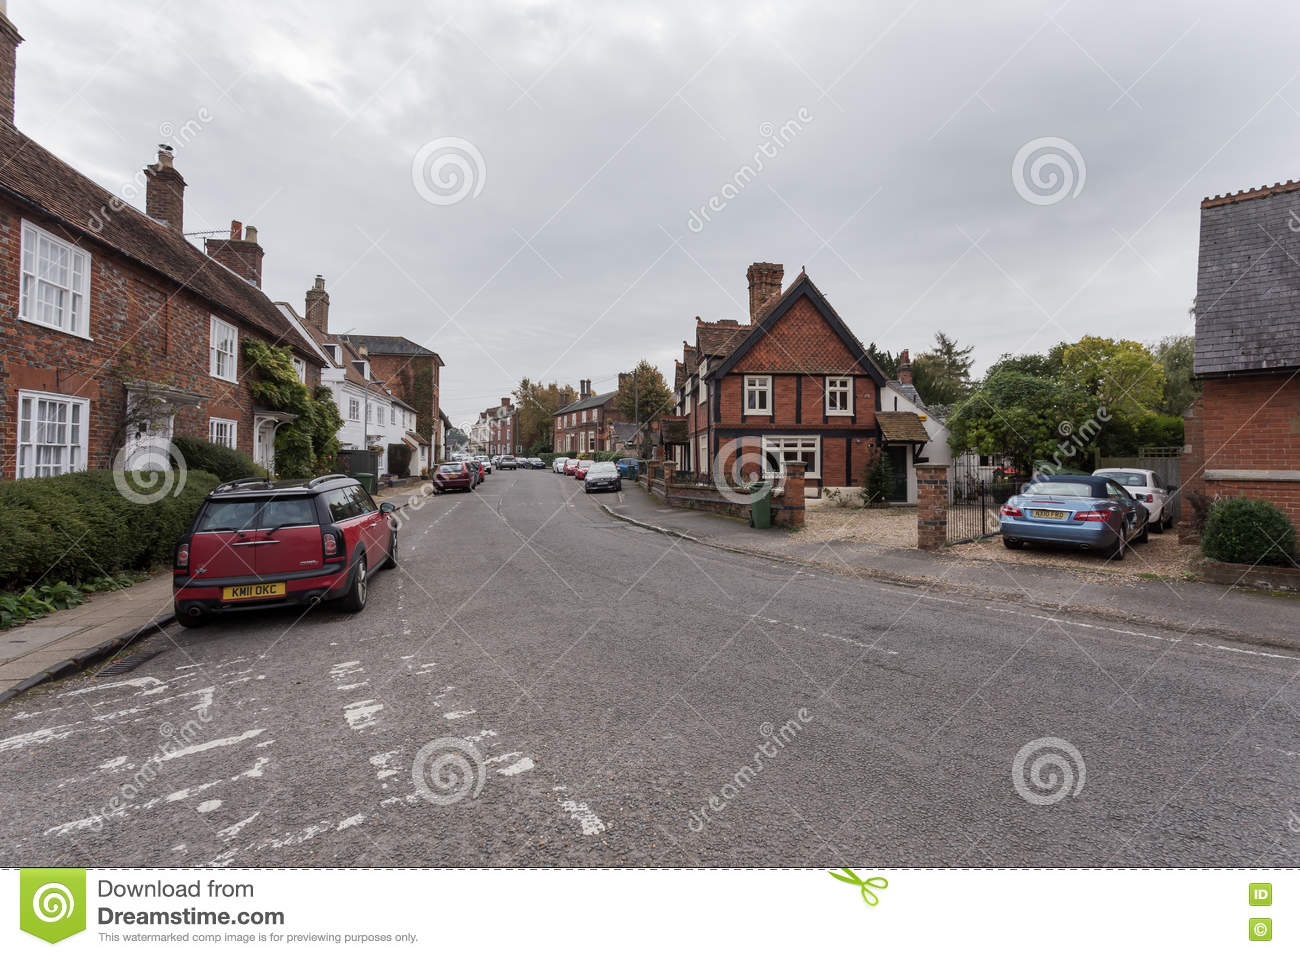 Winslow, Buckinghamshire, United Kingdom, October 25, 2016: Brick houses and cottages on the Horn street on grey chilly morning.